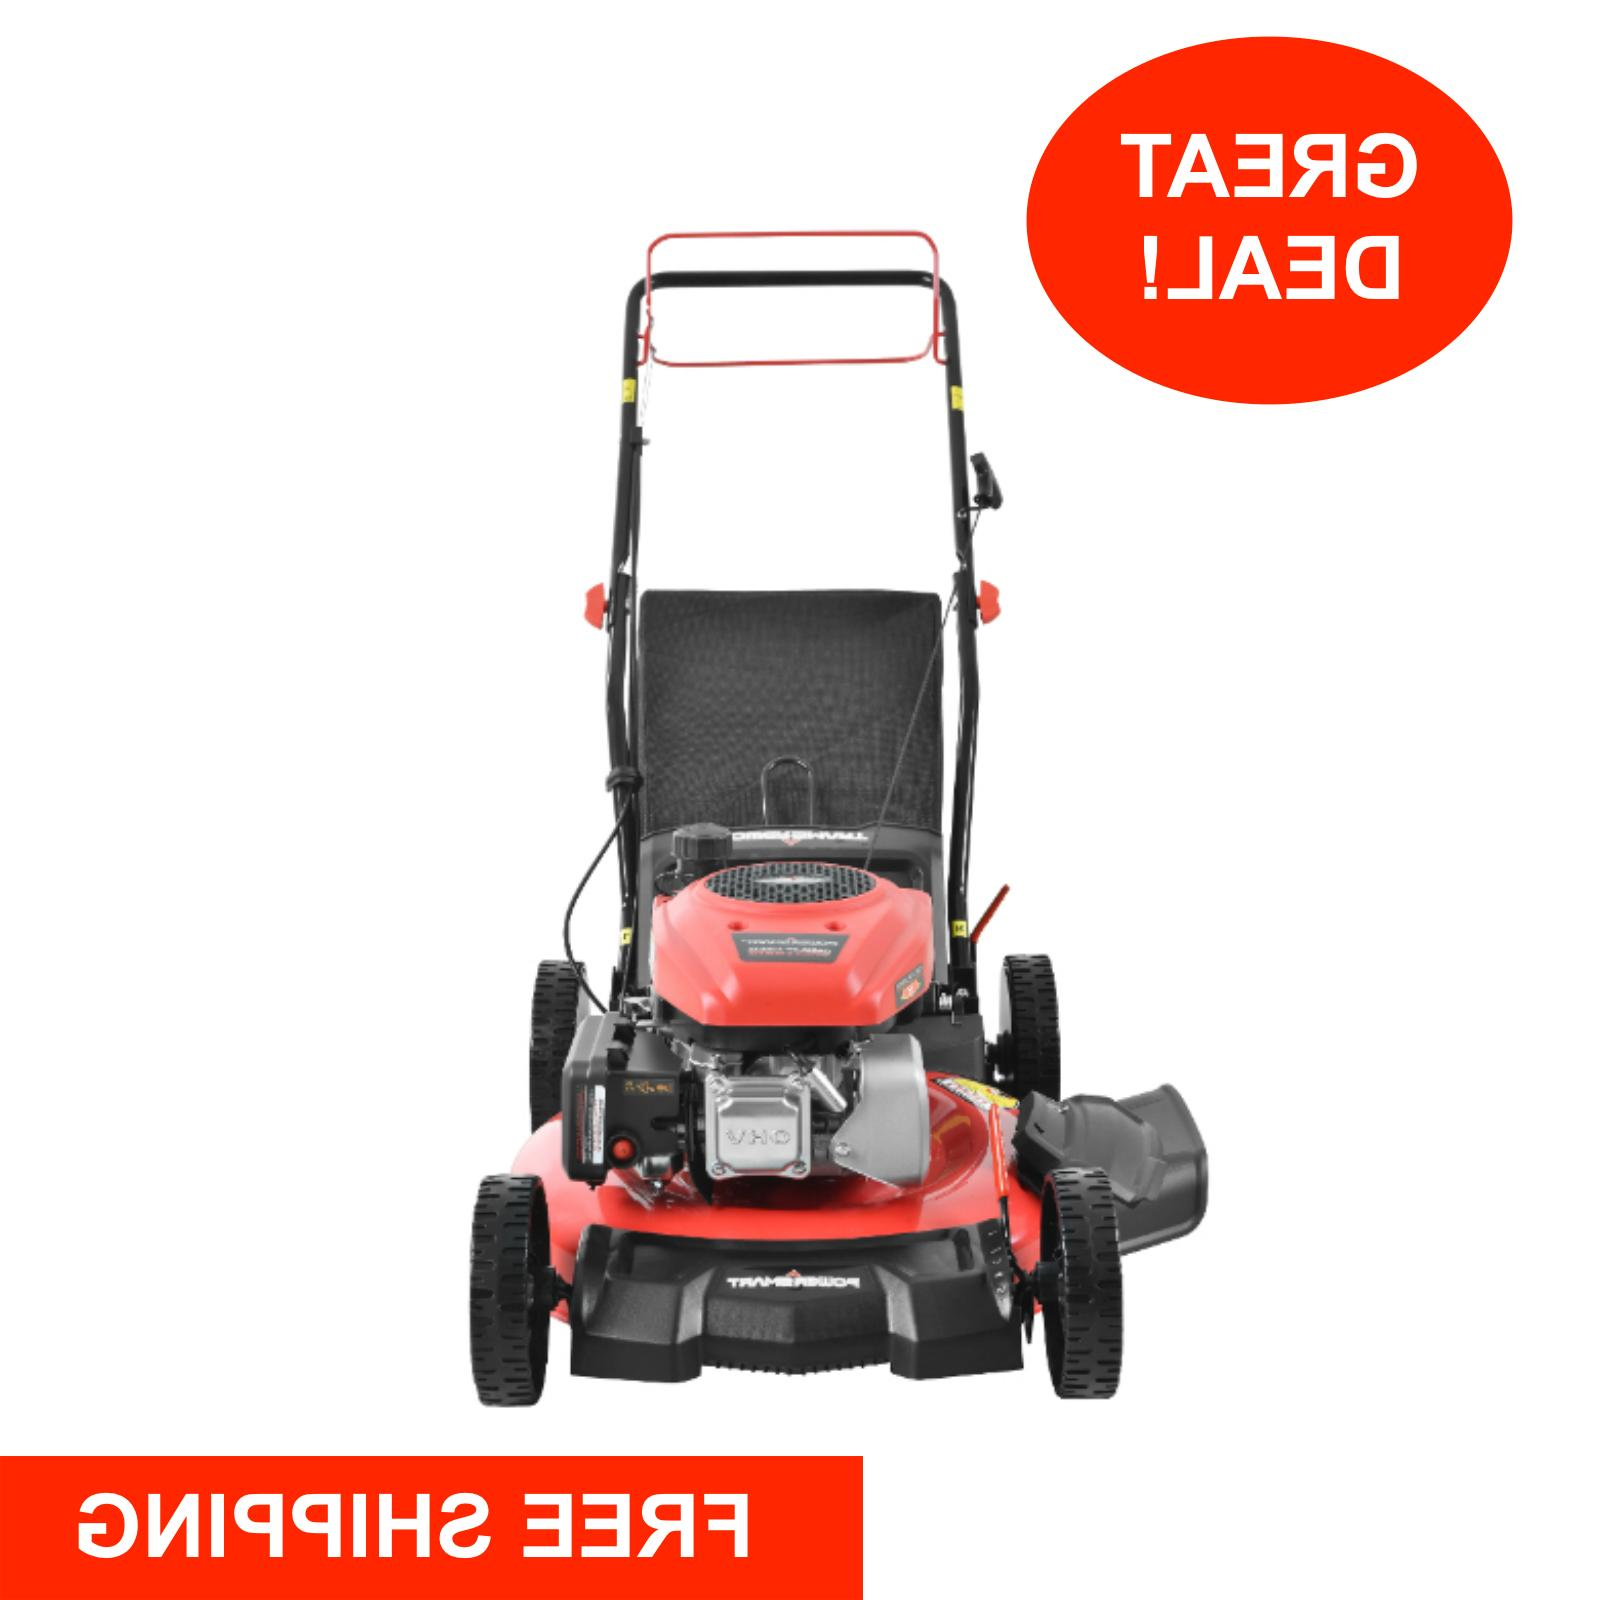 Self Propelled Lawn Mower Gas Powered 21 Bag Discharge Mulch